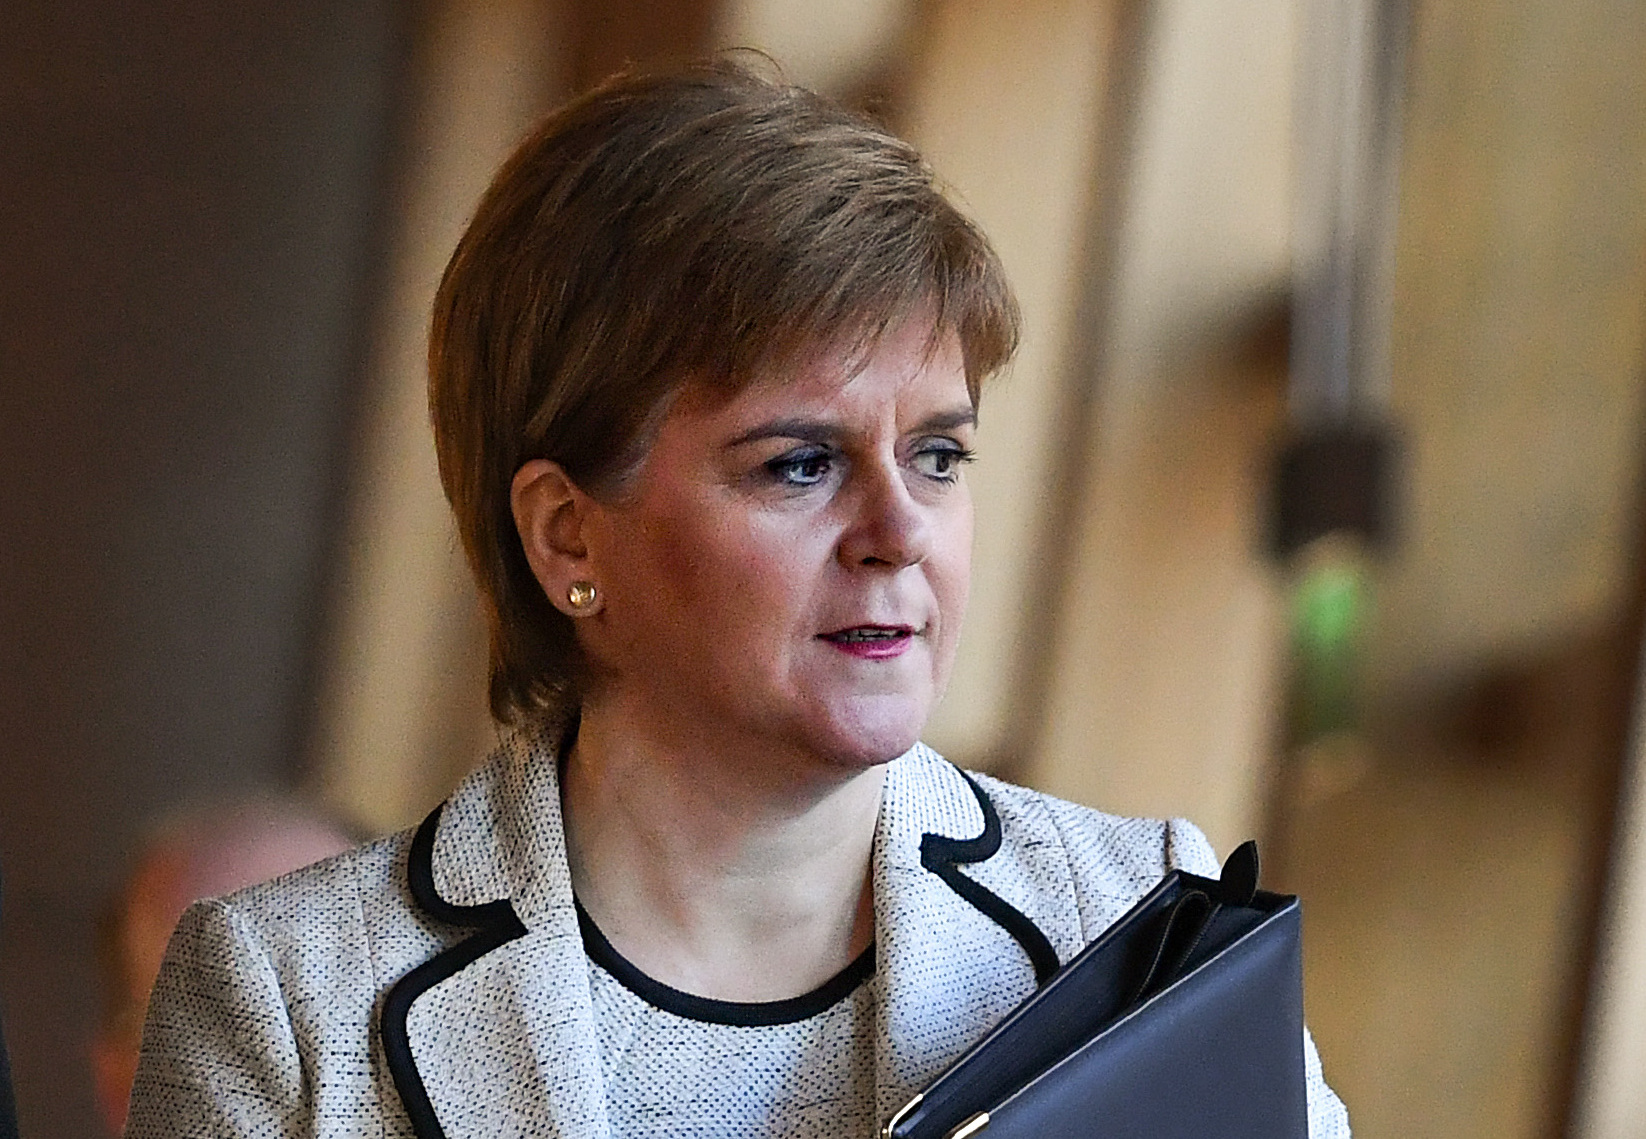 Nicola STurgeon was centre stage on TV on Wednesday evening explaining her personal anger at Scotland's exclusion